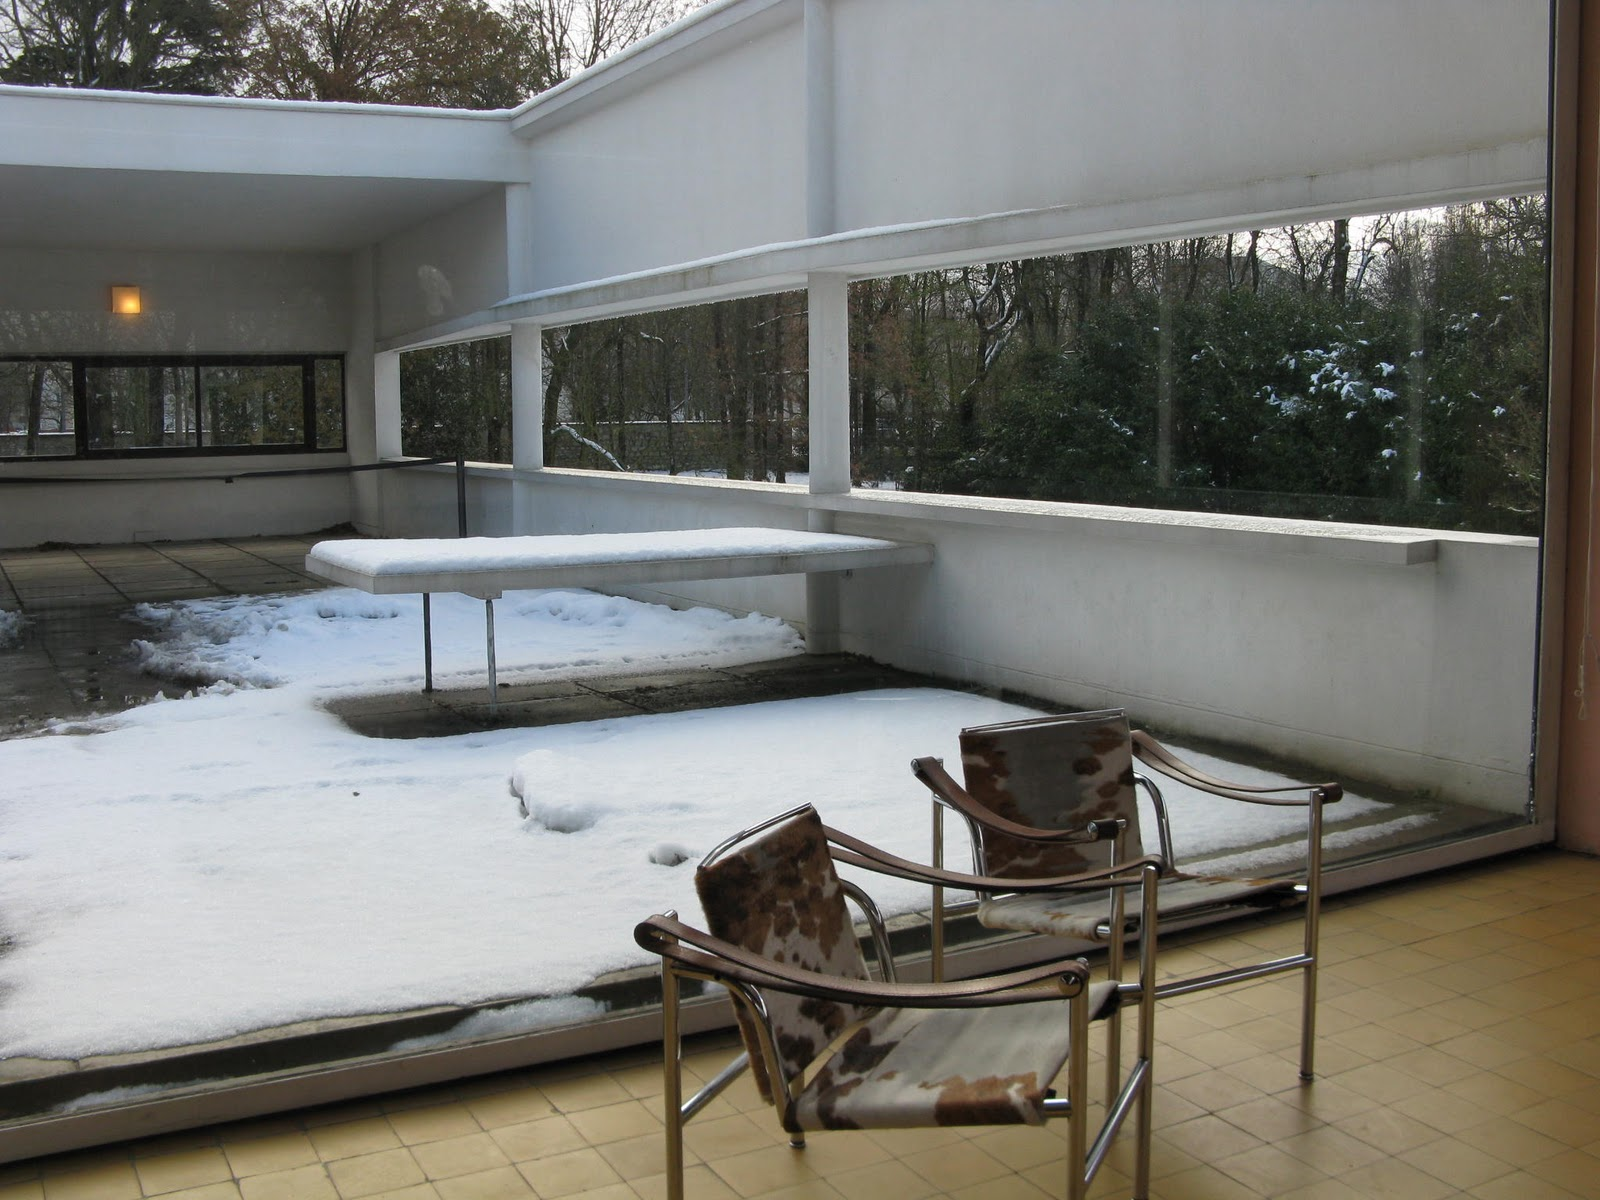 Le corbusier villa savoye interior - In Nice Weather You Can Roll Back The Window Separating Inside From Outside The Chairs Are Copies Of A Le Corbusier Design